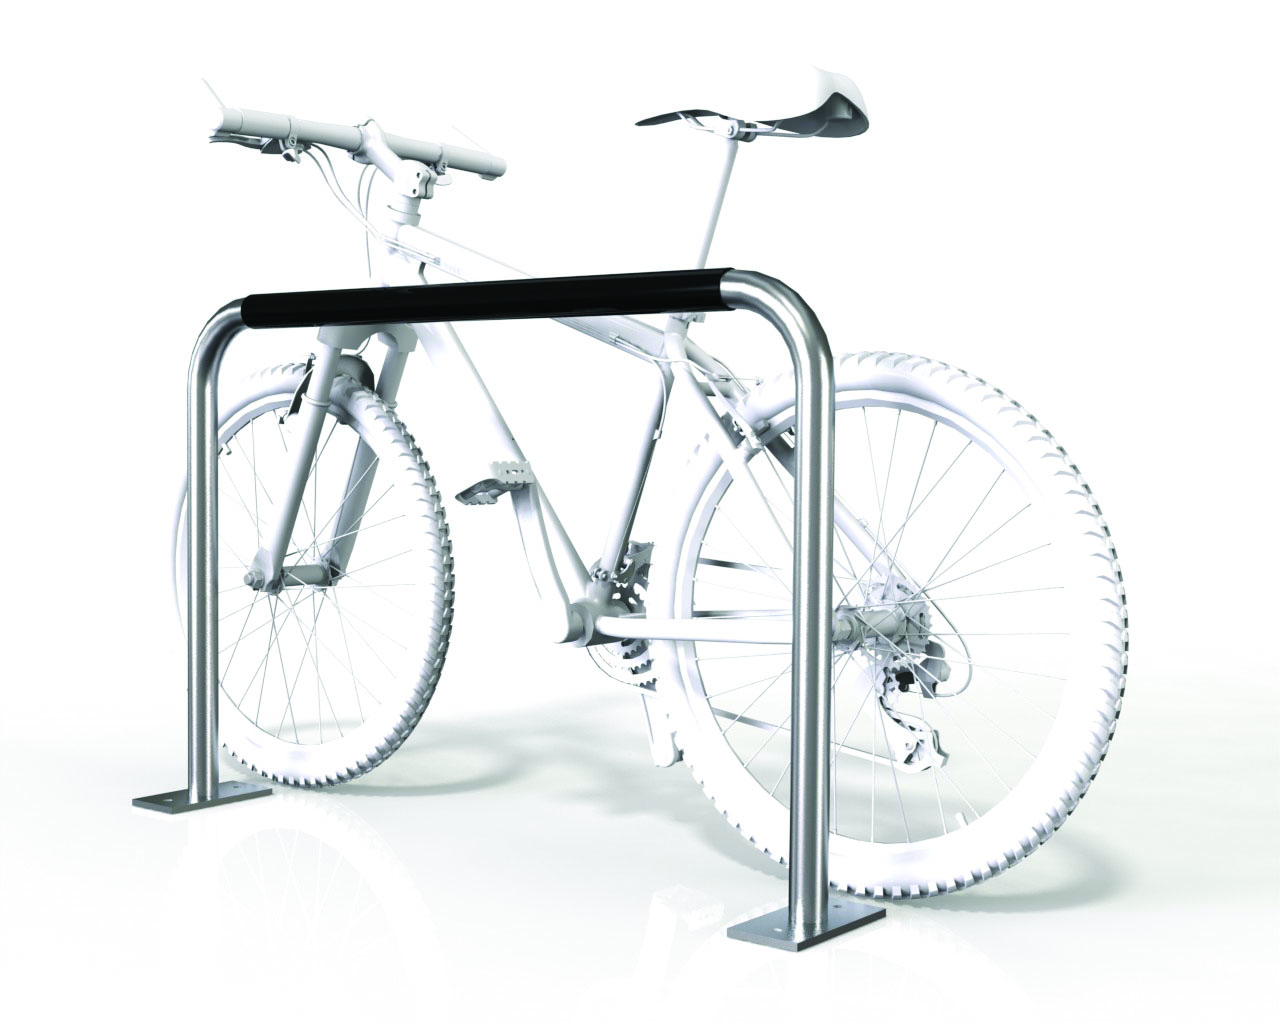 Large 2 Bike Rail - Base Plate